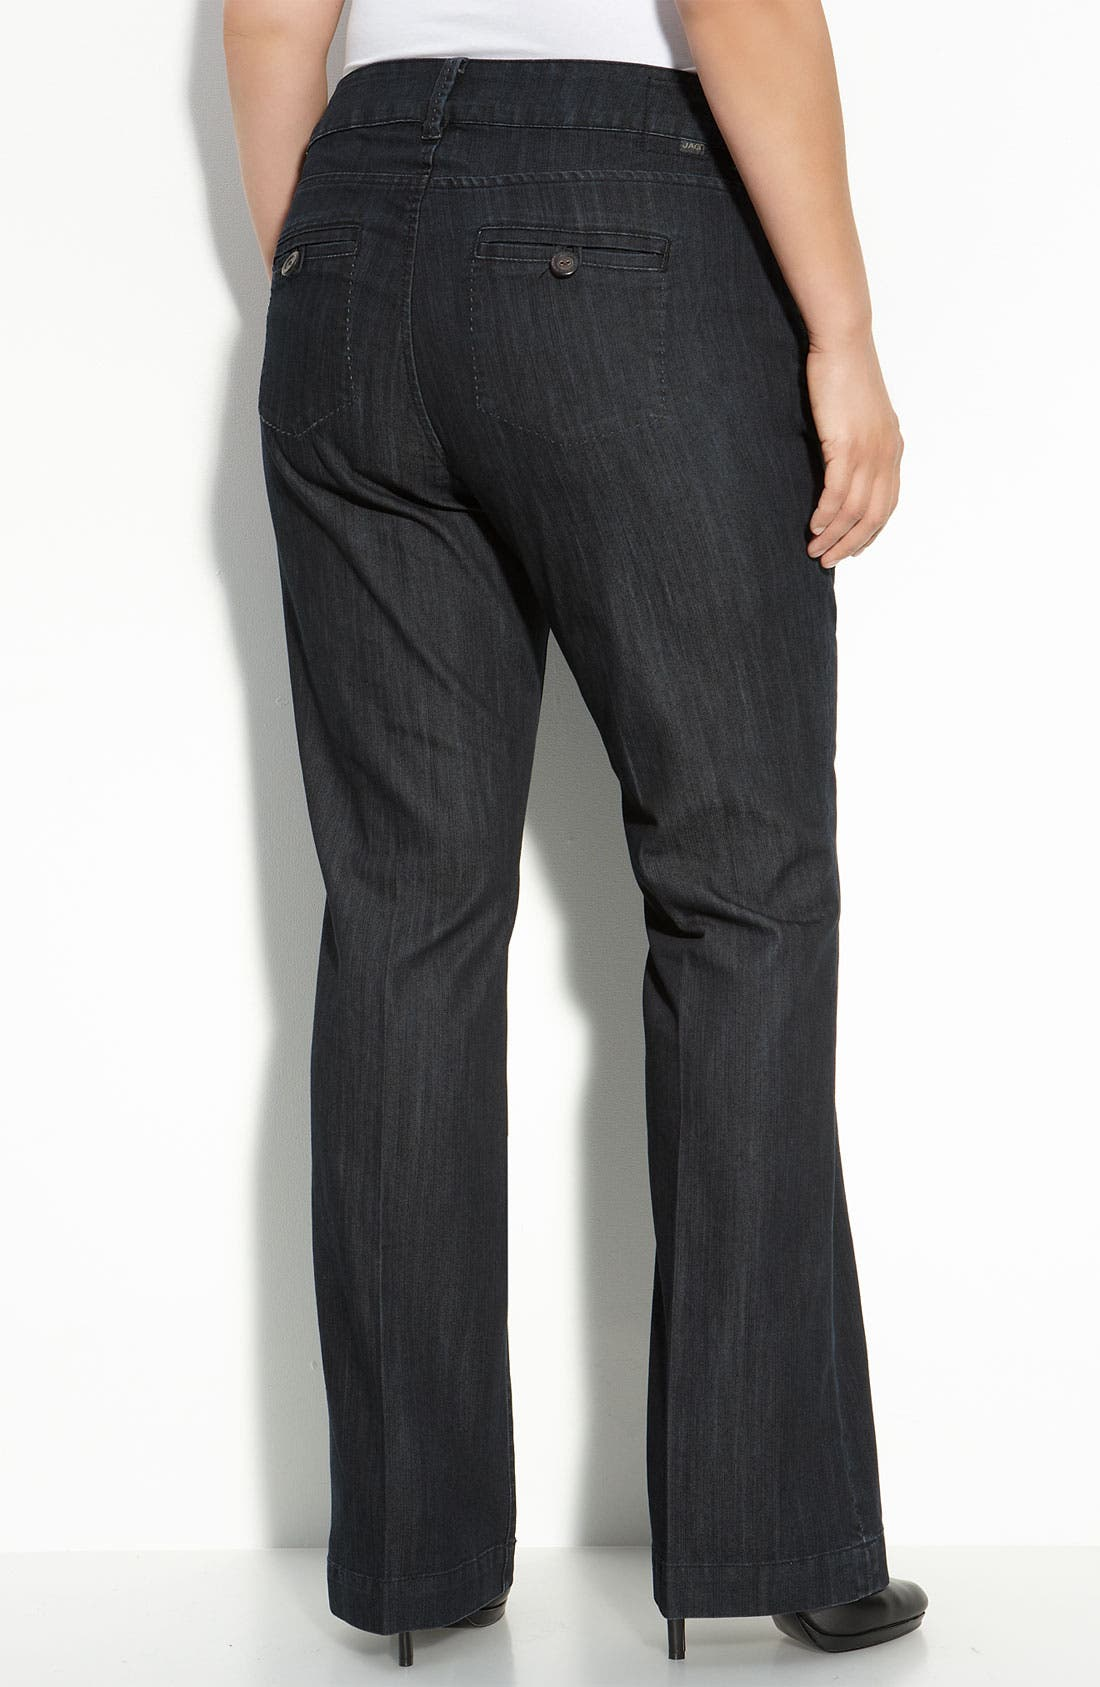 Alternate Image 1 Selected - Jag Jeans 'Adrienne' Trouser Jeans (Plus)